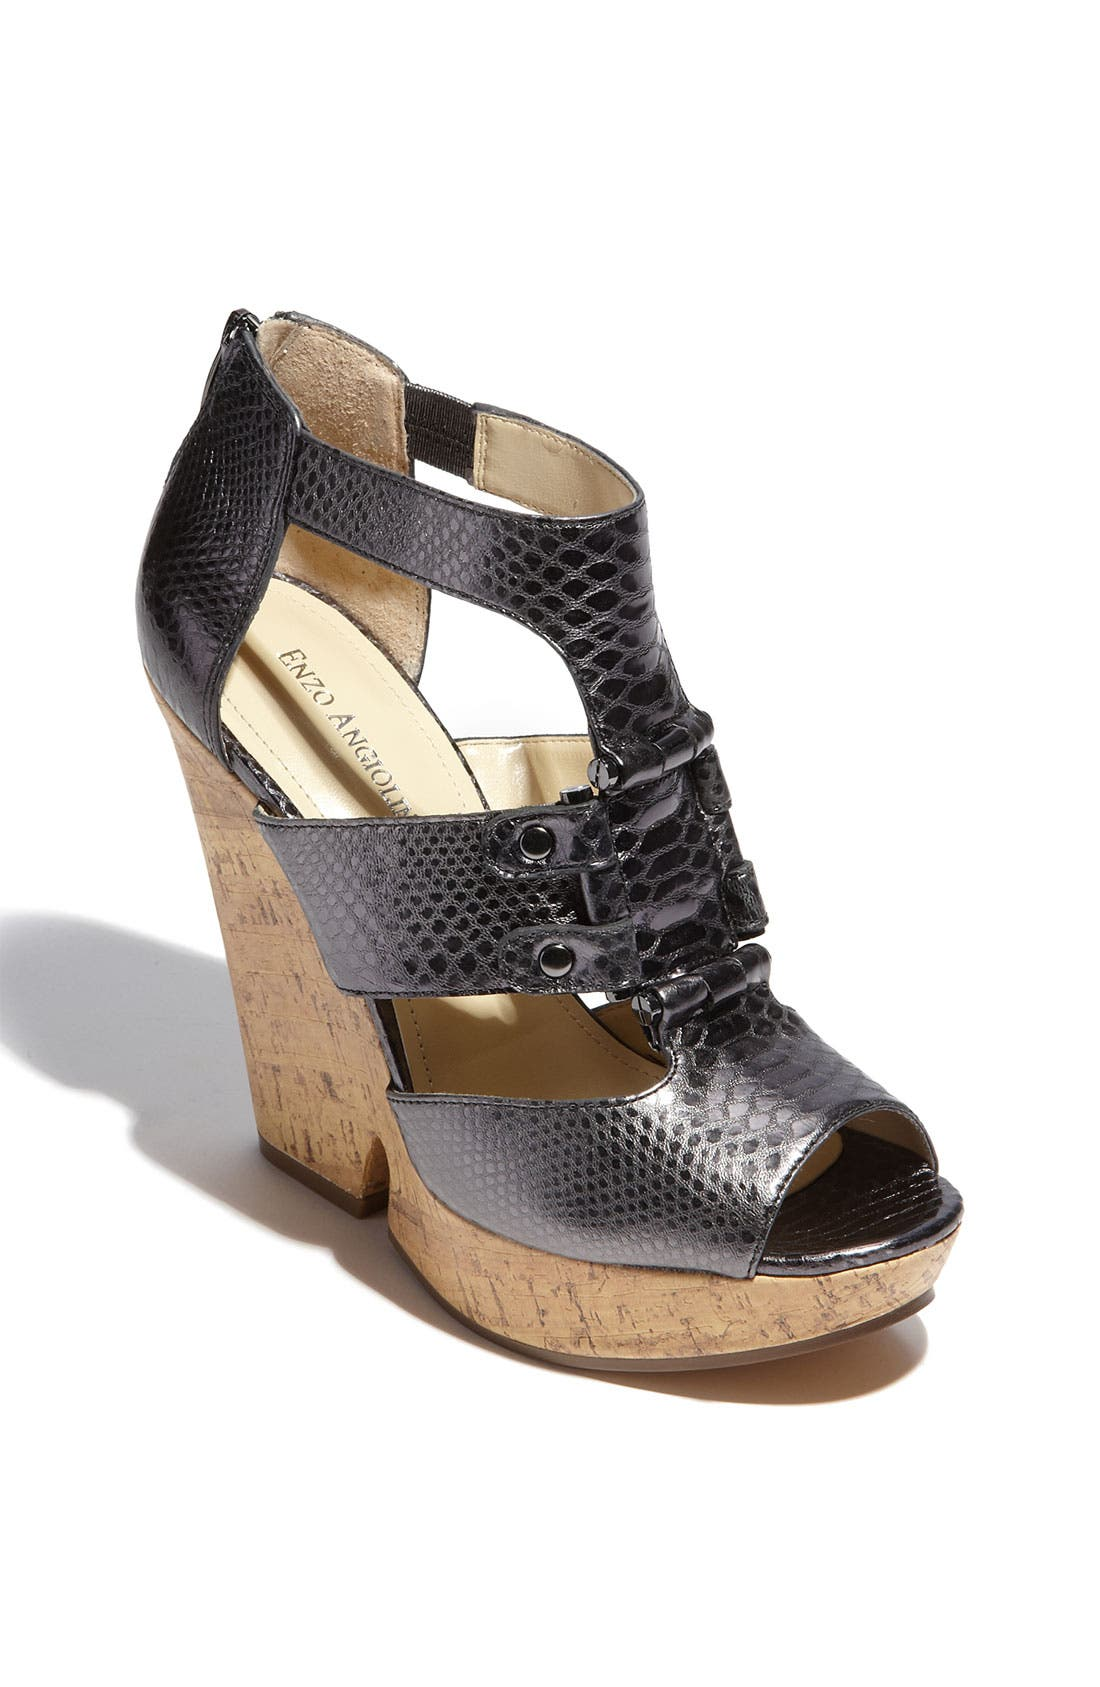 Alternate Image 1 Selected - Enzo Angiolini 'Dossil' Wedge Sandal